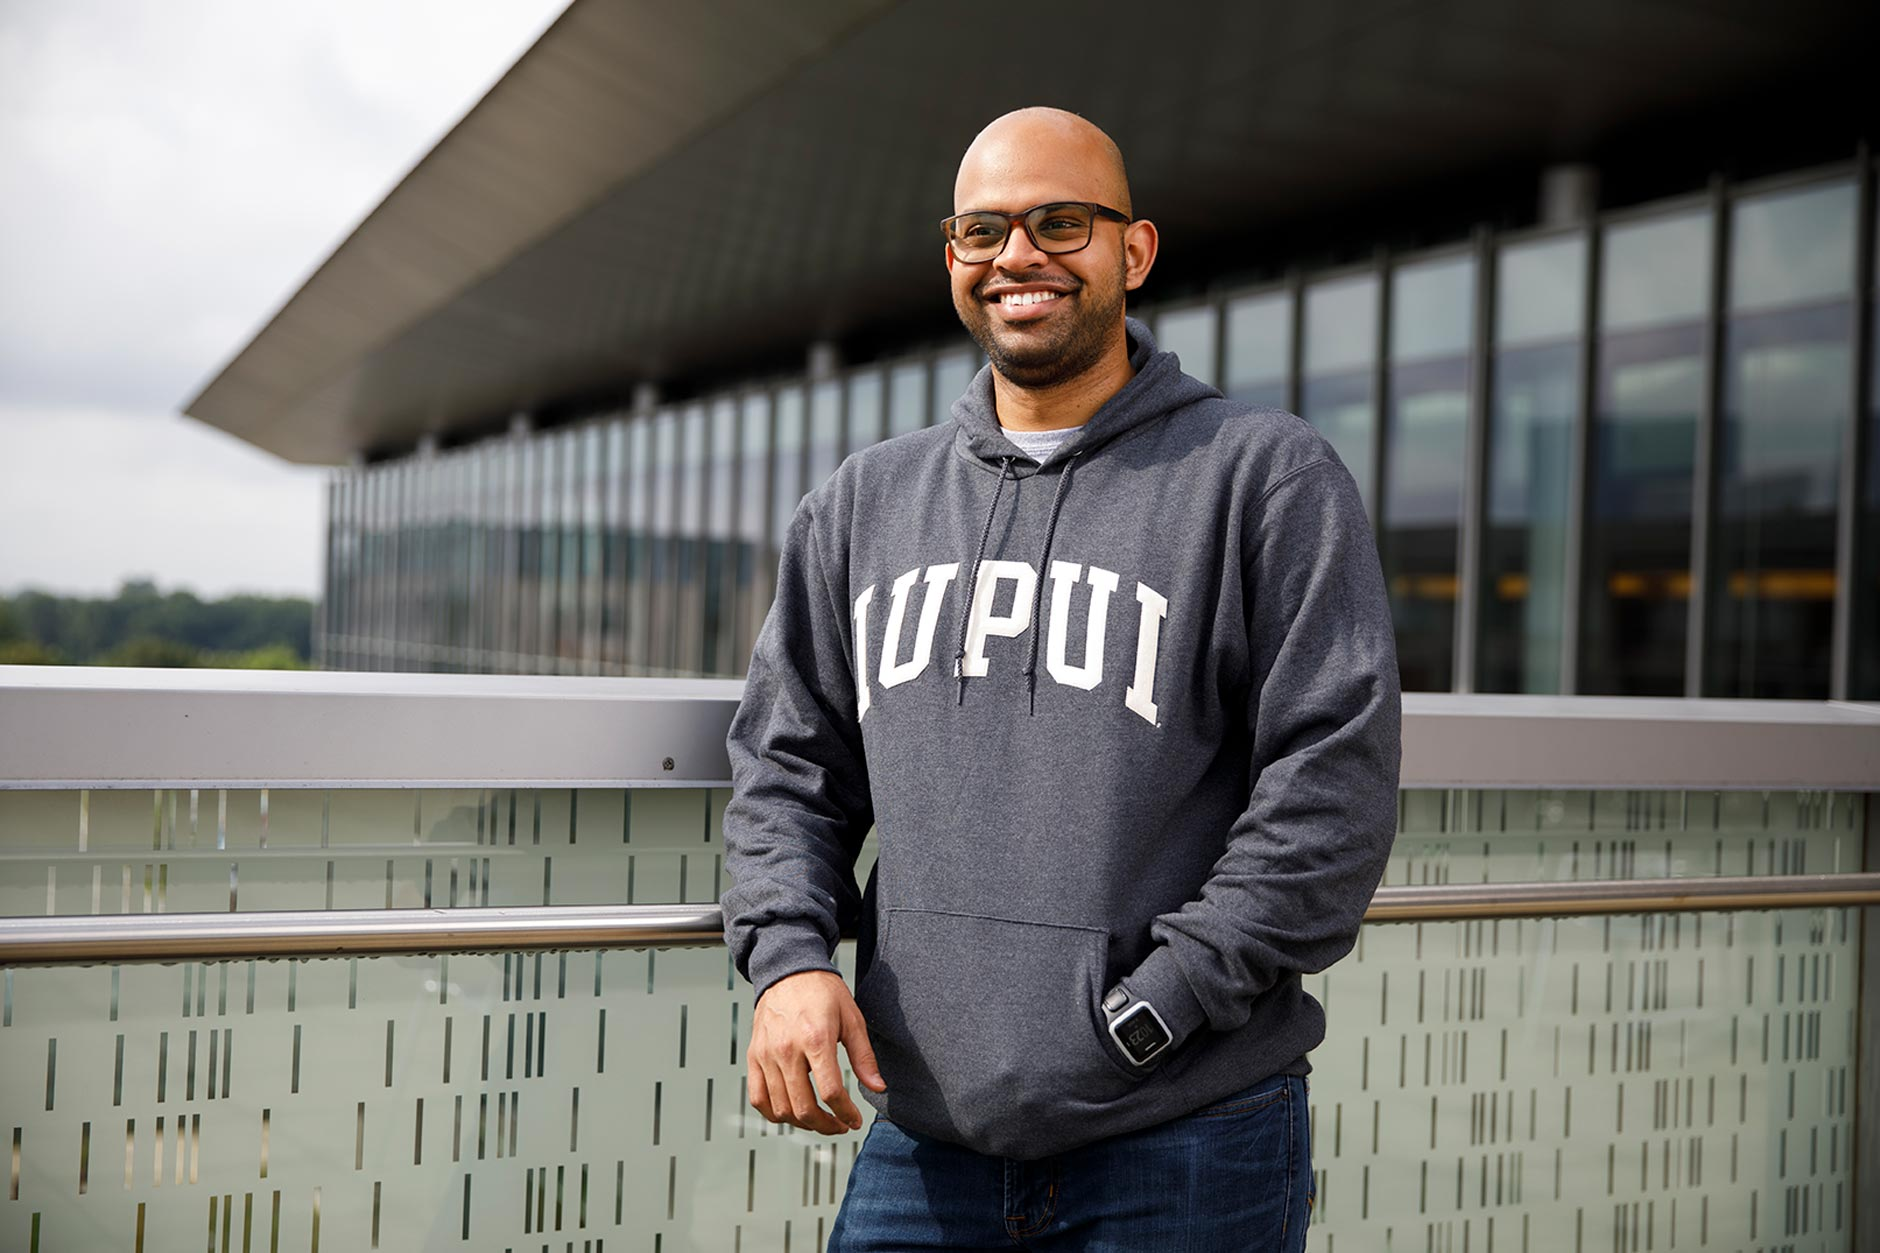 IUPUI student Karan Patel poses for a portrait during a IUPUI apparel fashion photo shoot at the Campus Center on Wednesday, Aug. 8, 2018.